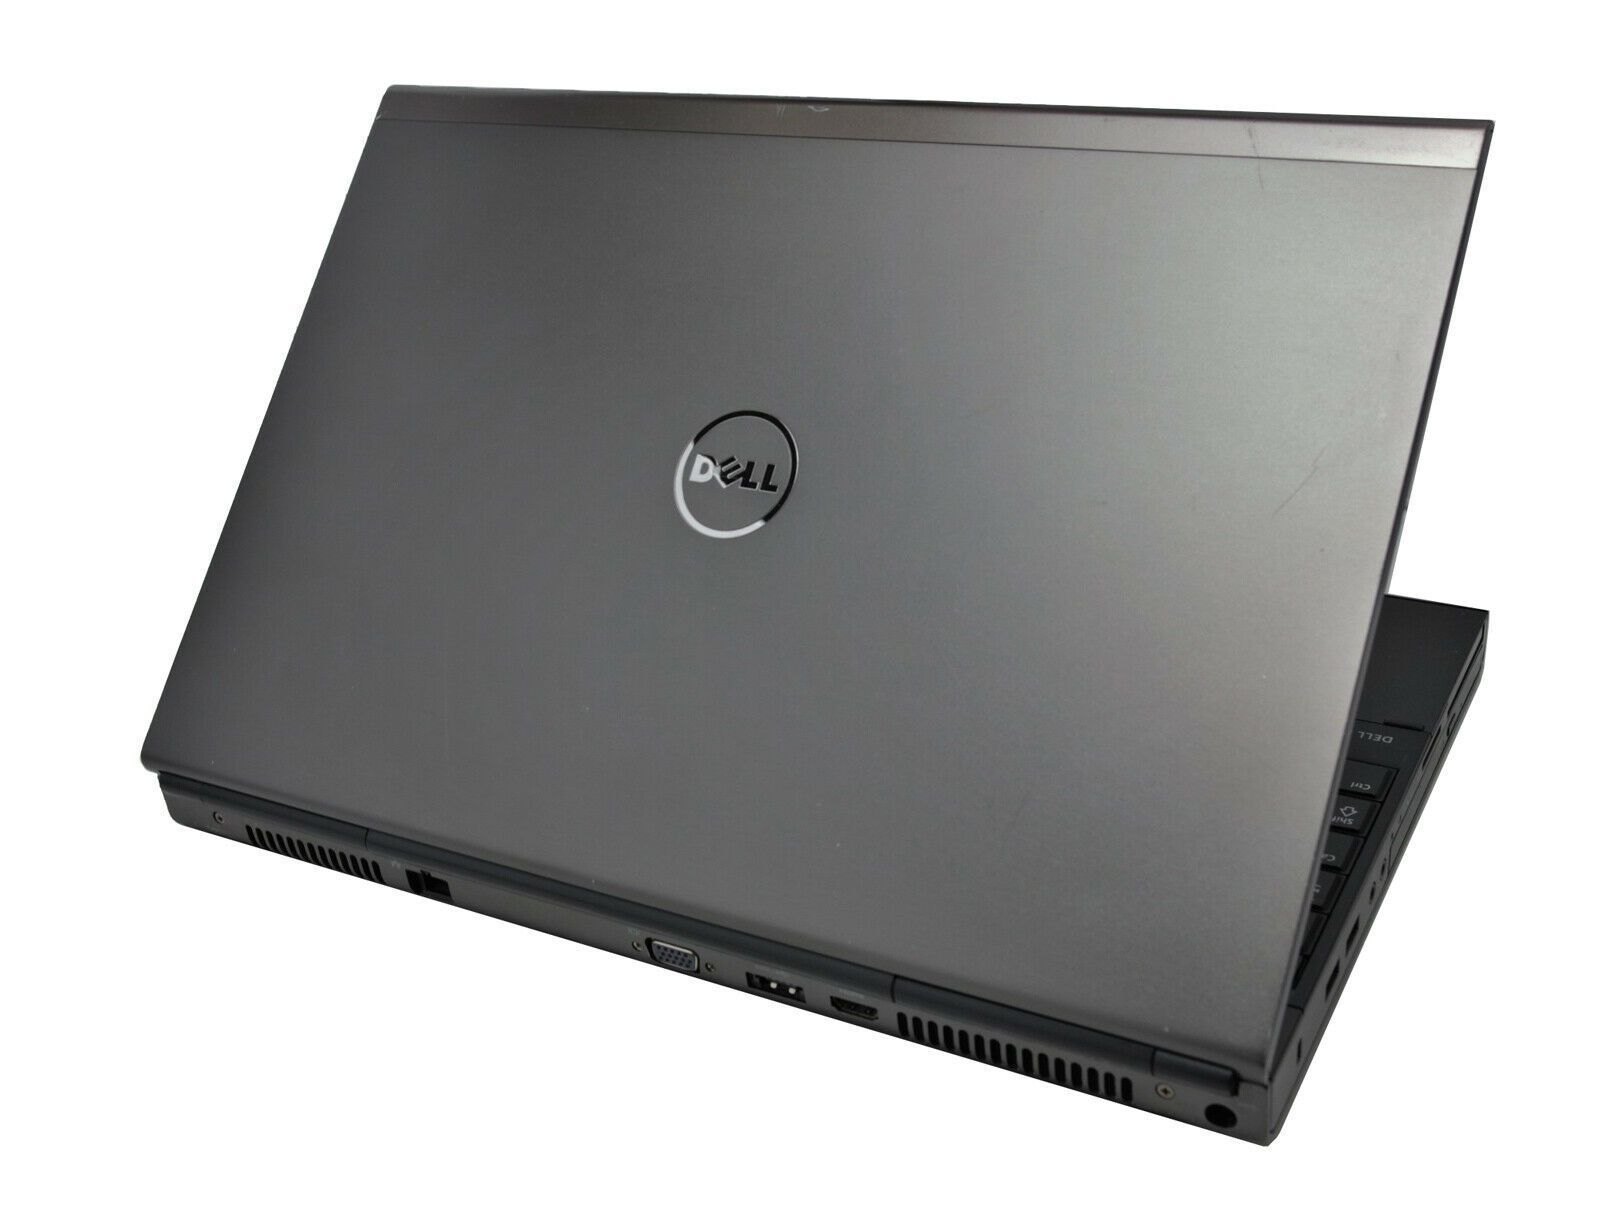 Dell Precision M4800 CAD 15.6 Laptop: Core i7-4940MX, 16GB RAM, 480GB SSD, VAT - CruiseTech